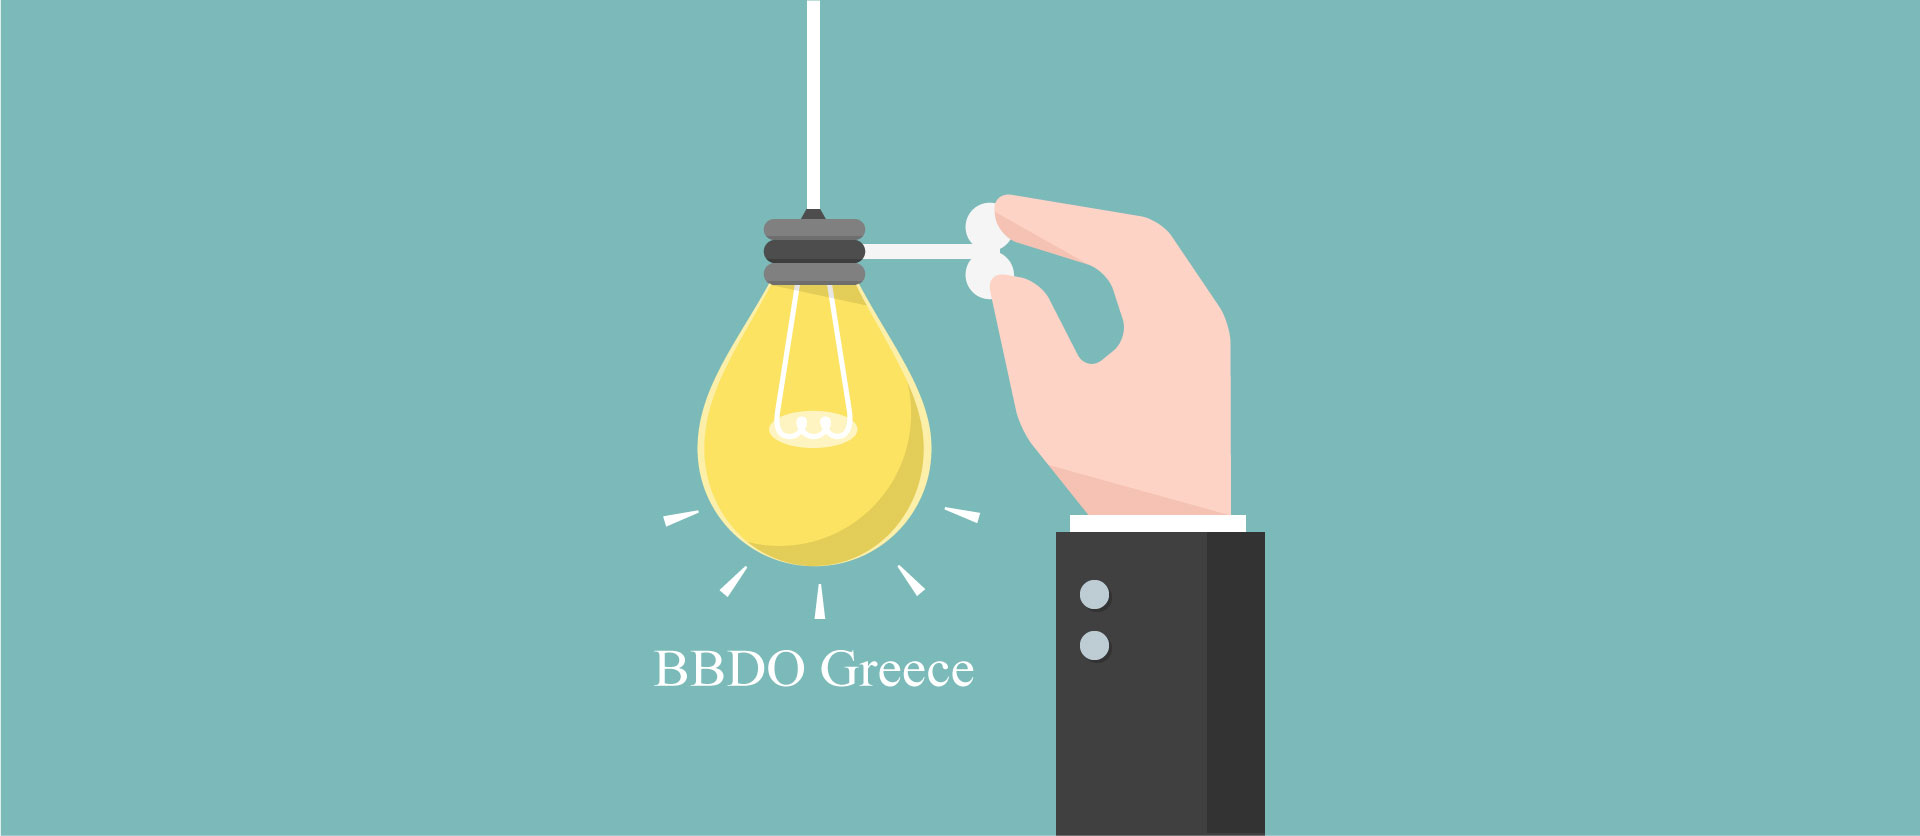 BBDO Greece